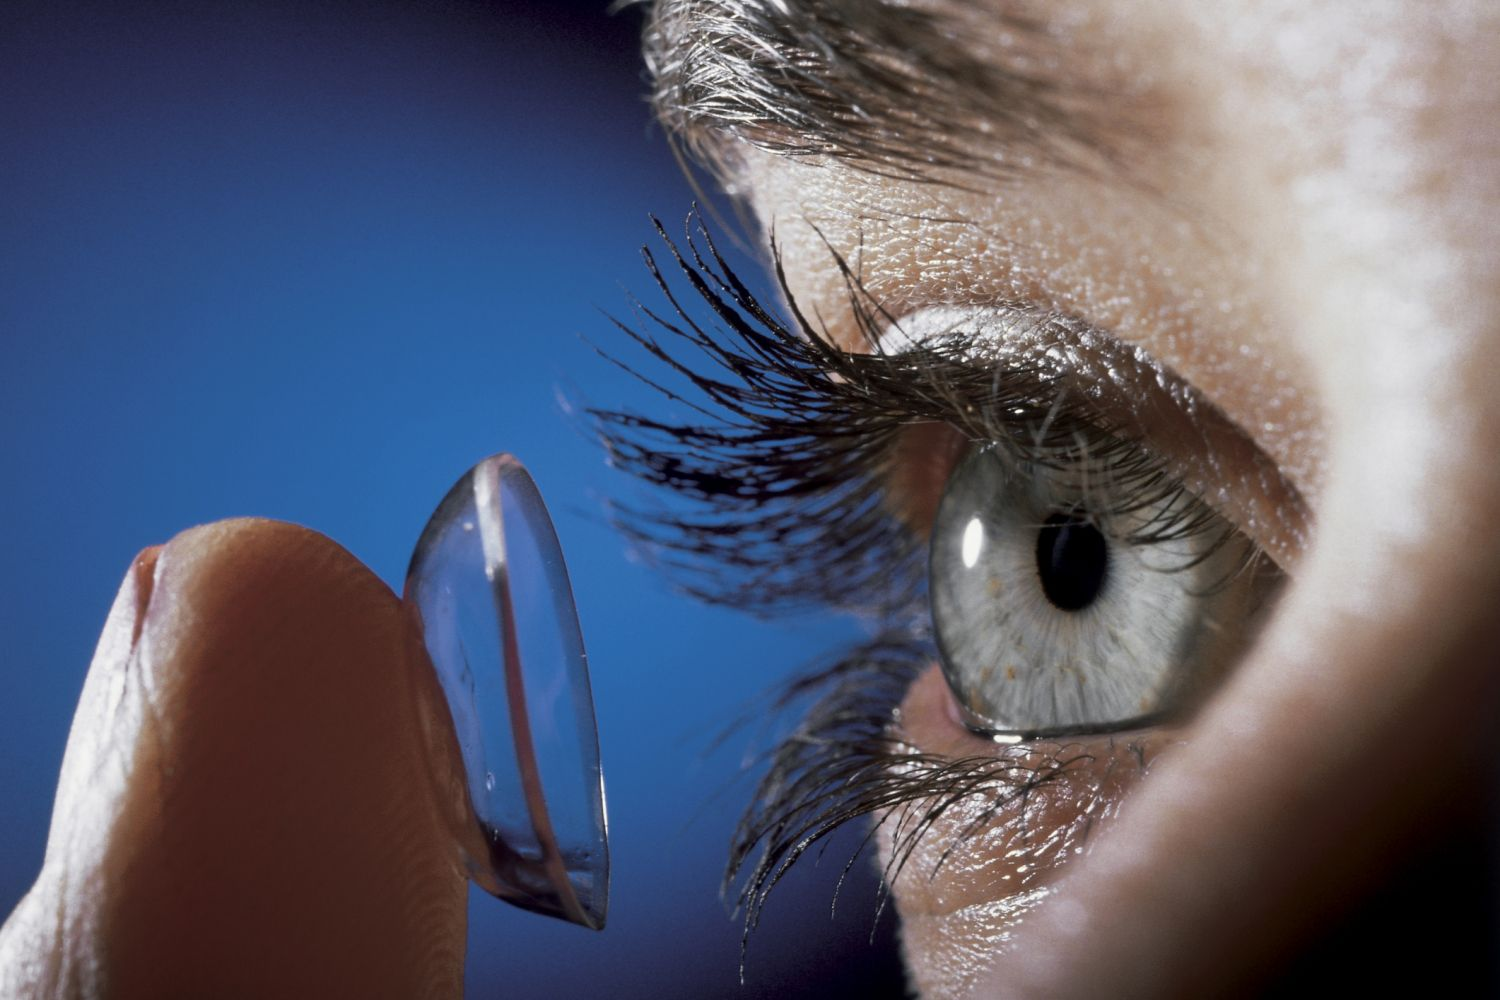 Close up of a person inserting a contact lens